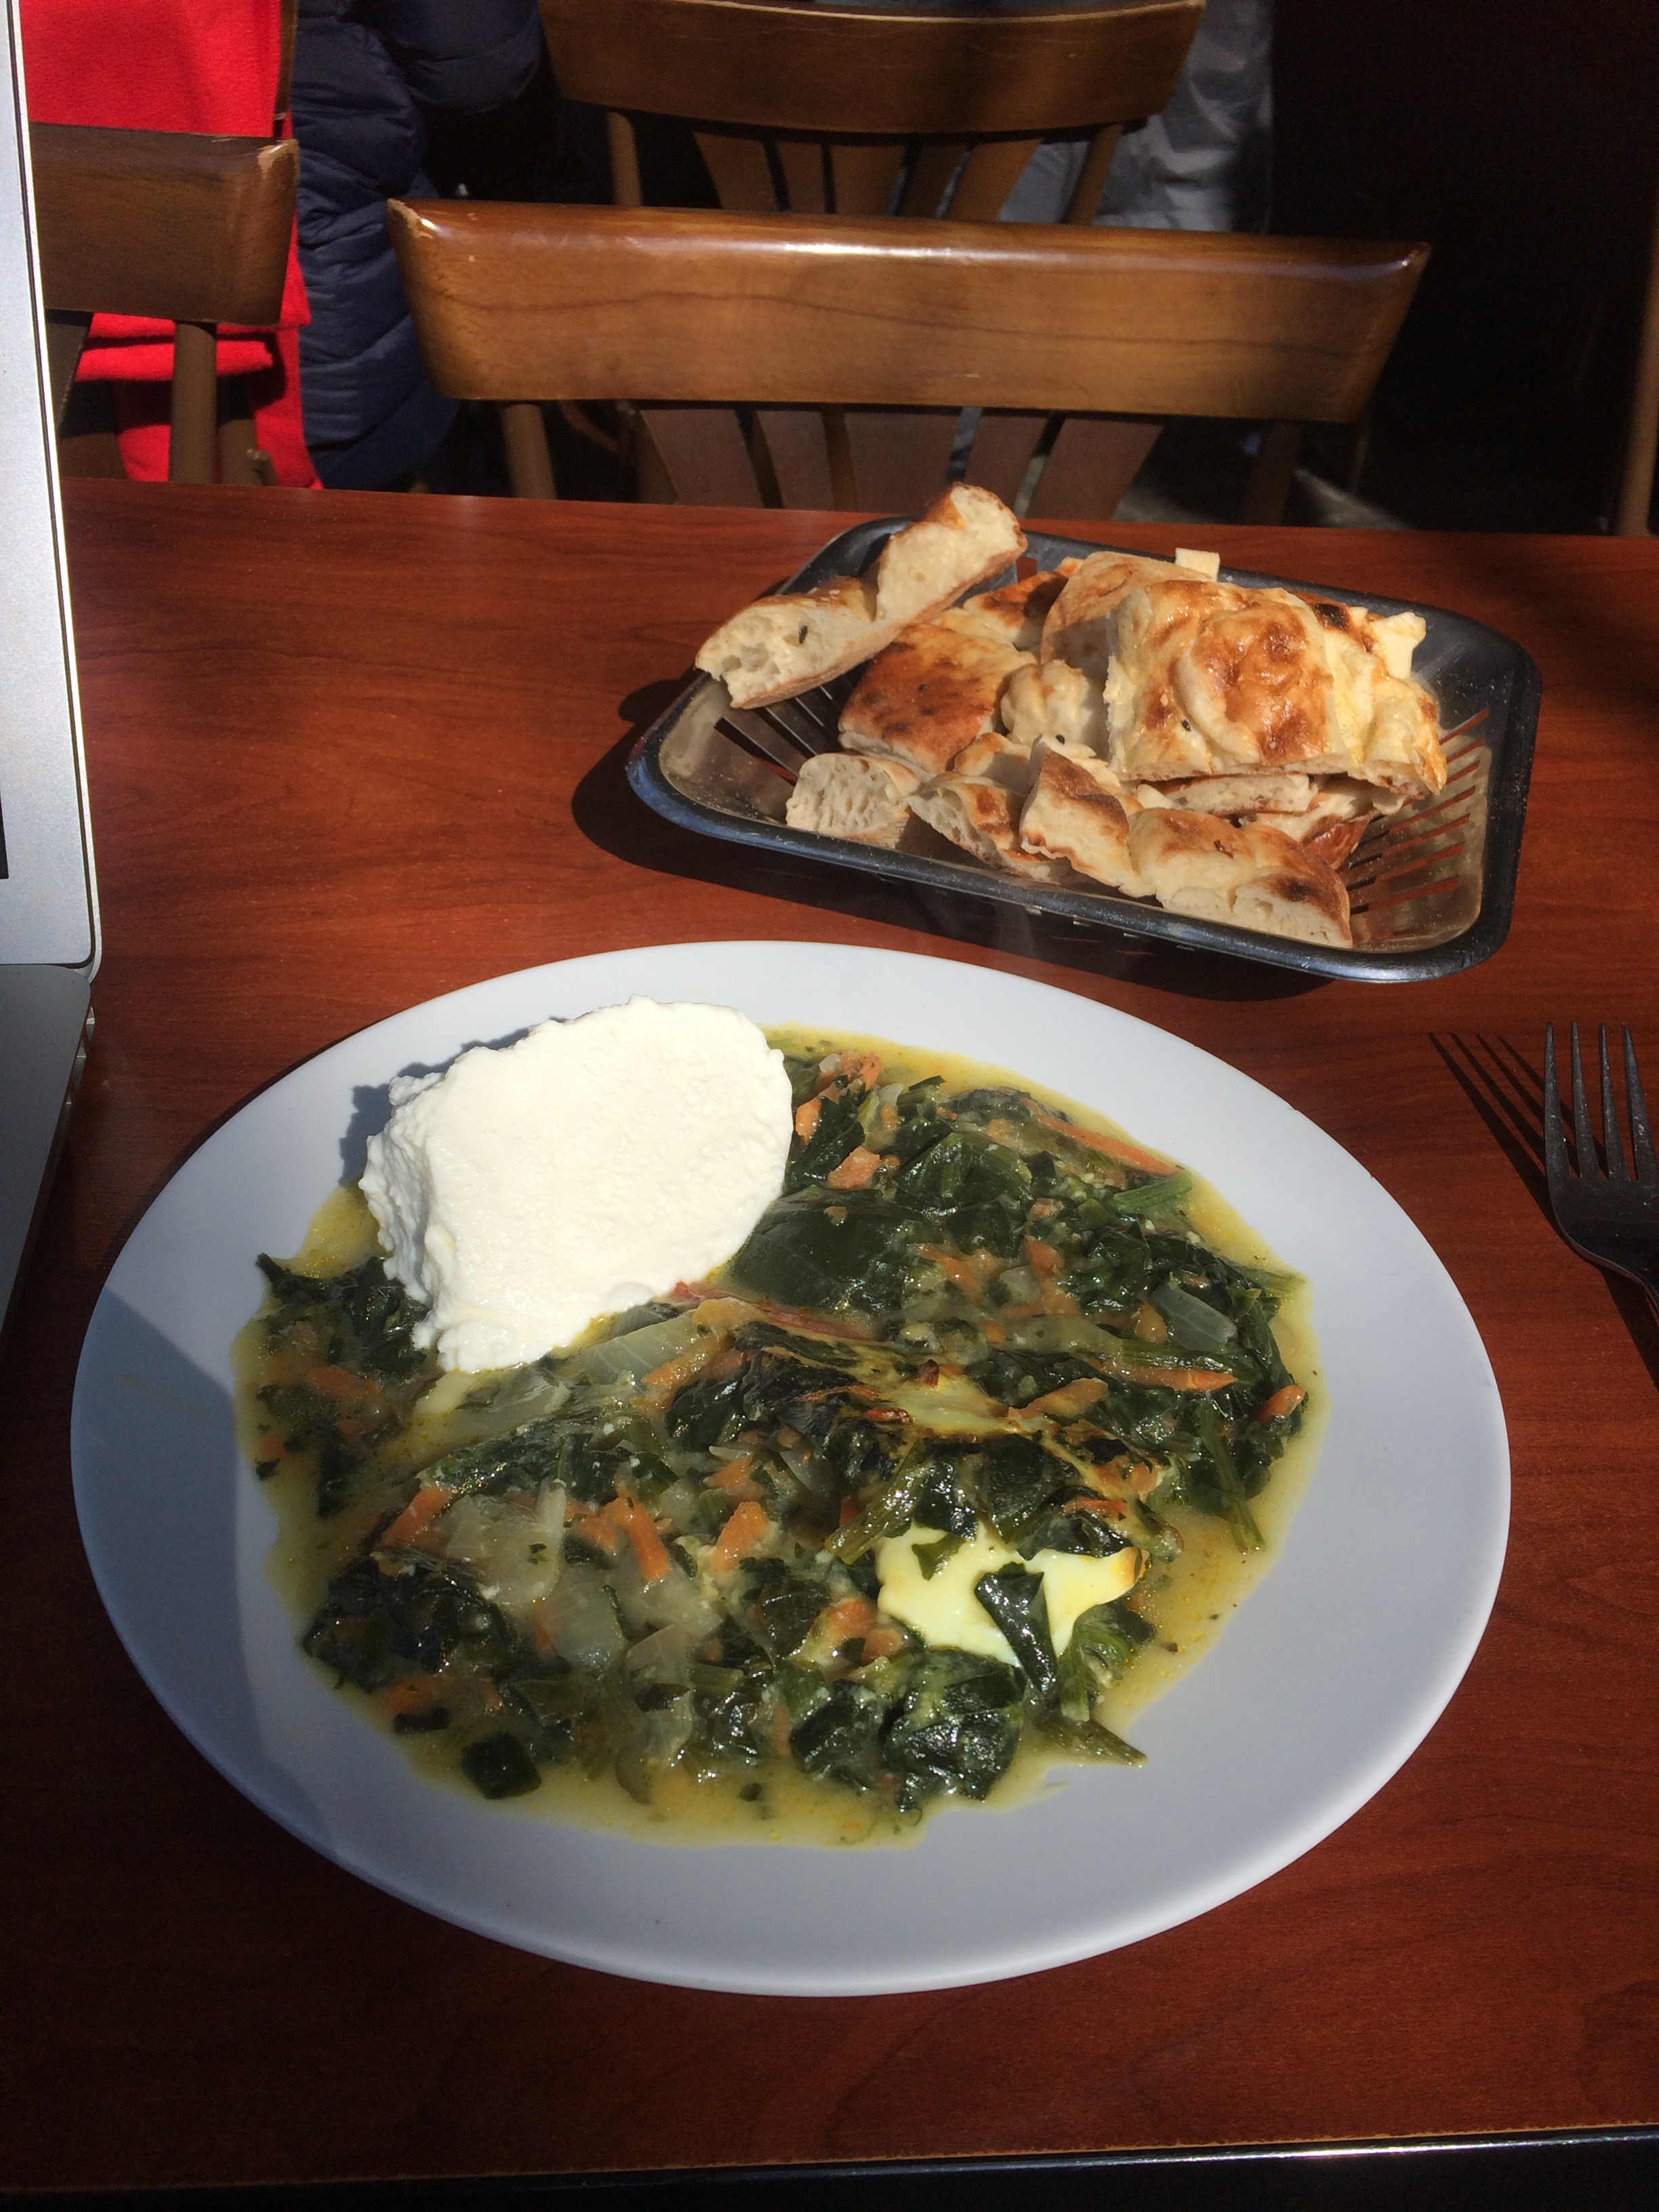 Spinach and egg with Turkish Yoghurt and bread